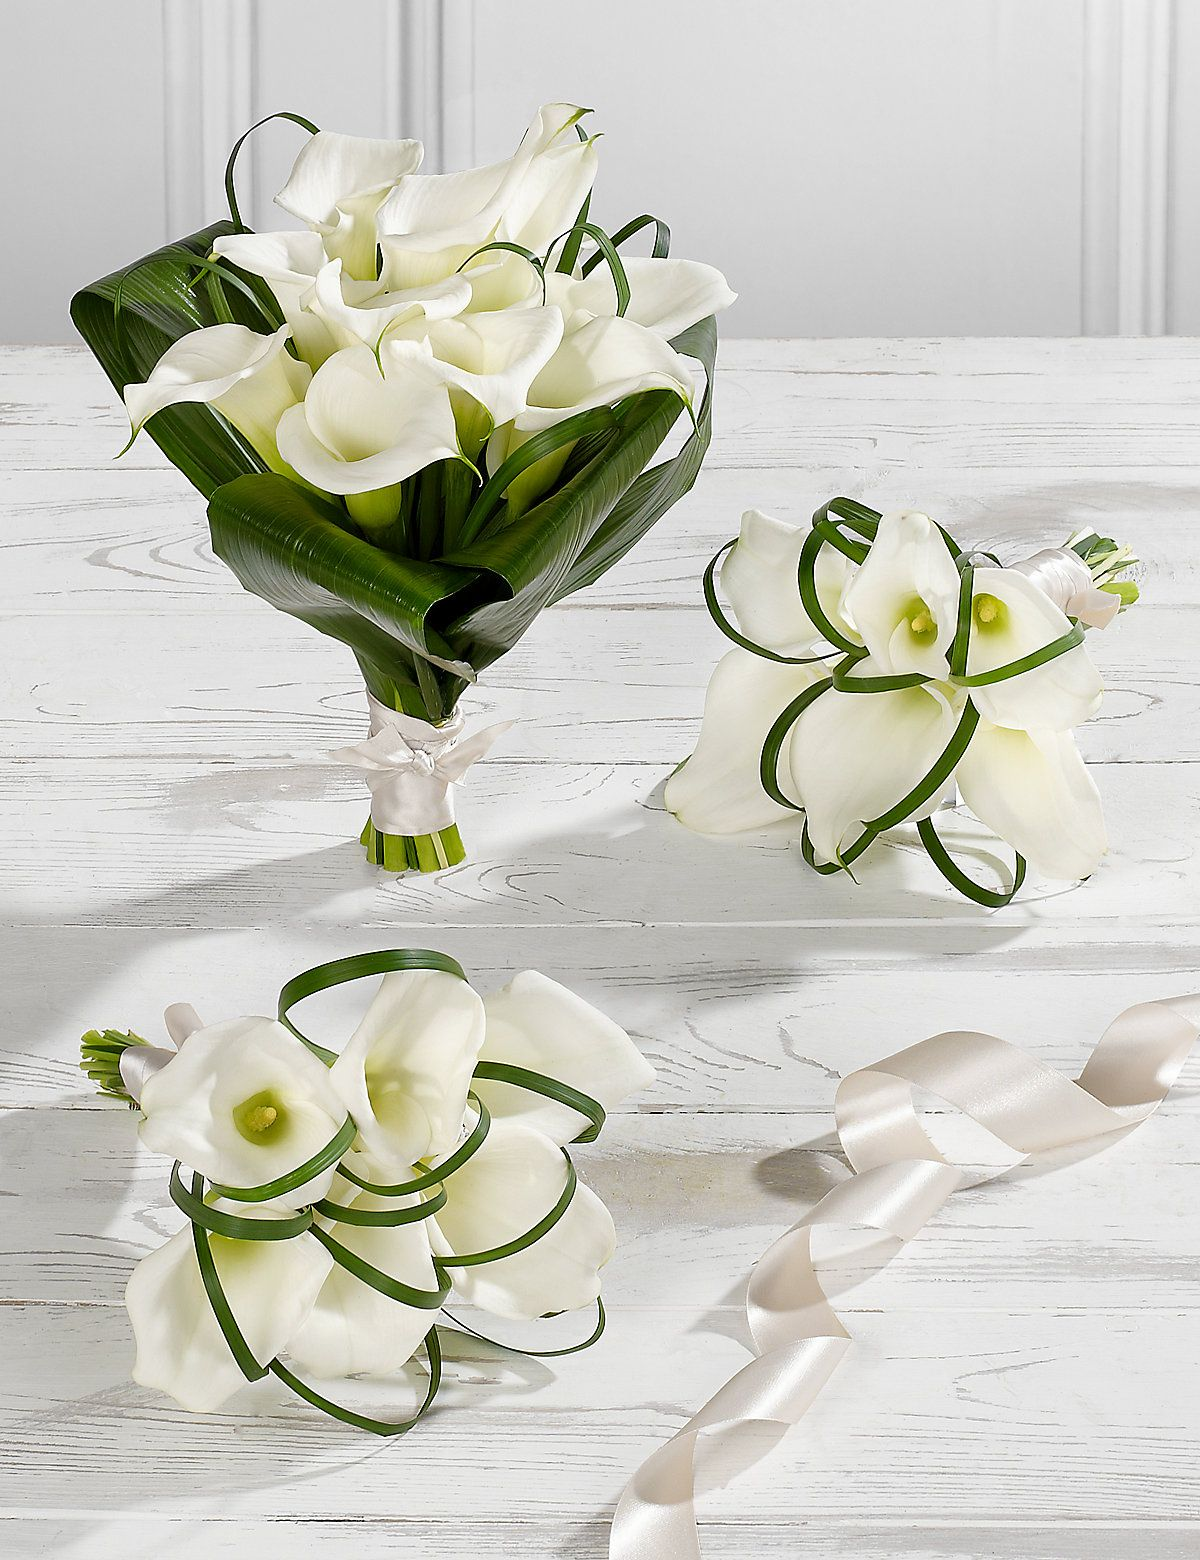 White Calla Lily Wedding Flowers Collection 1 Calla Lilies